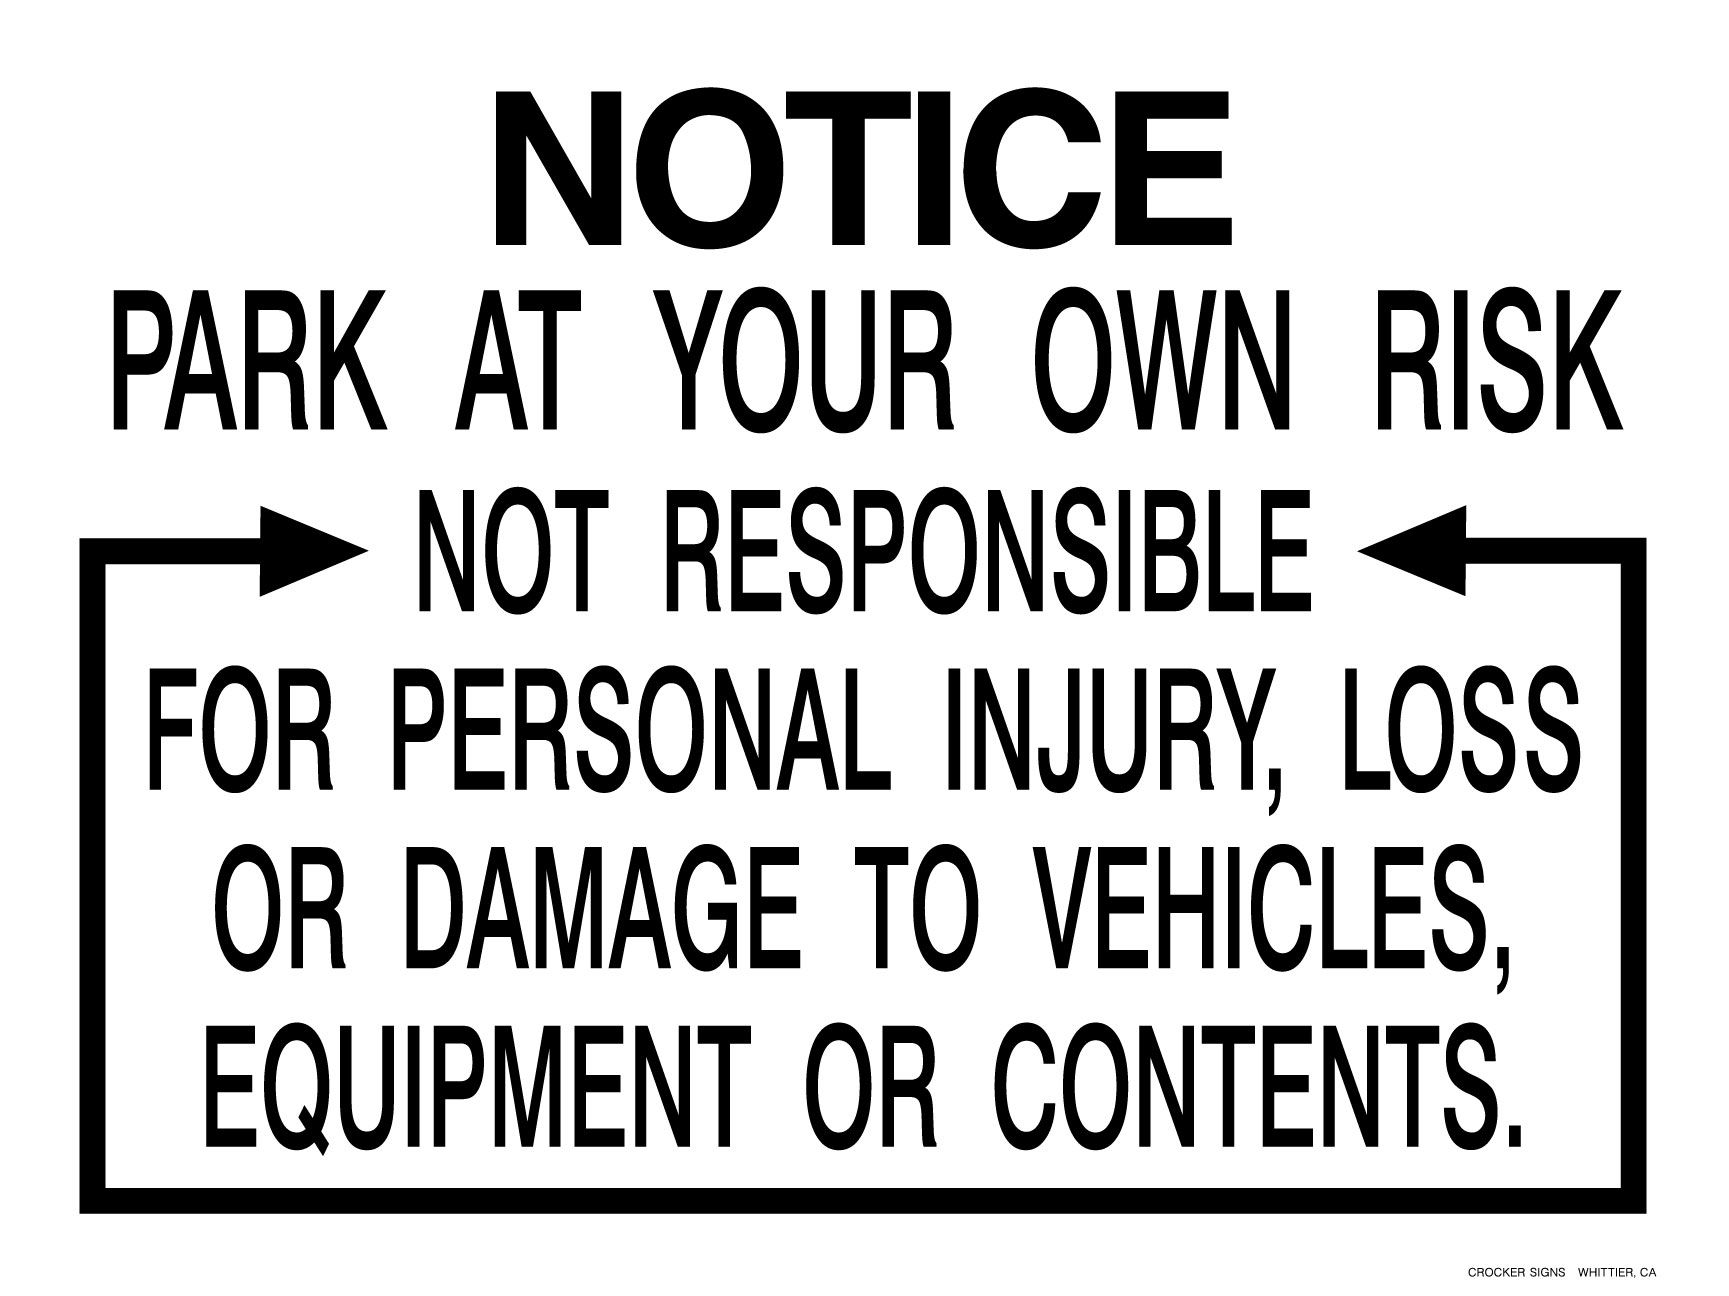 PARK AT YOUR OWN RISK